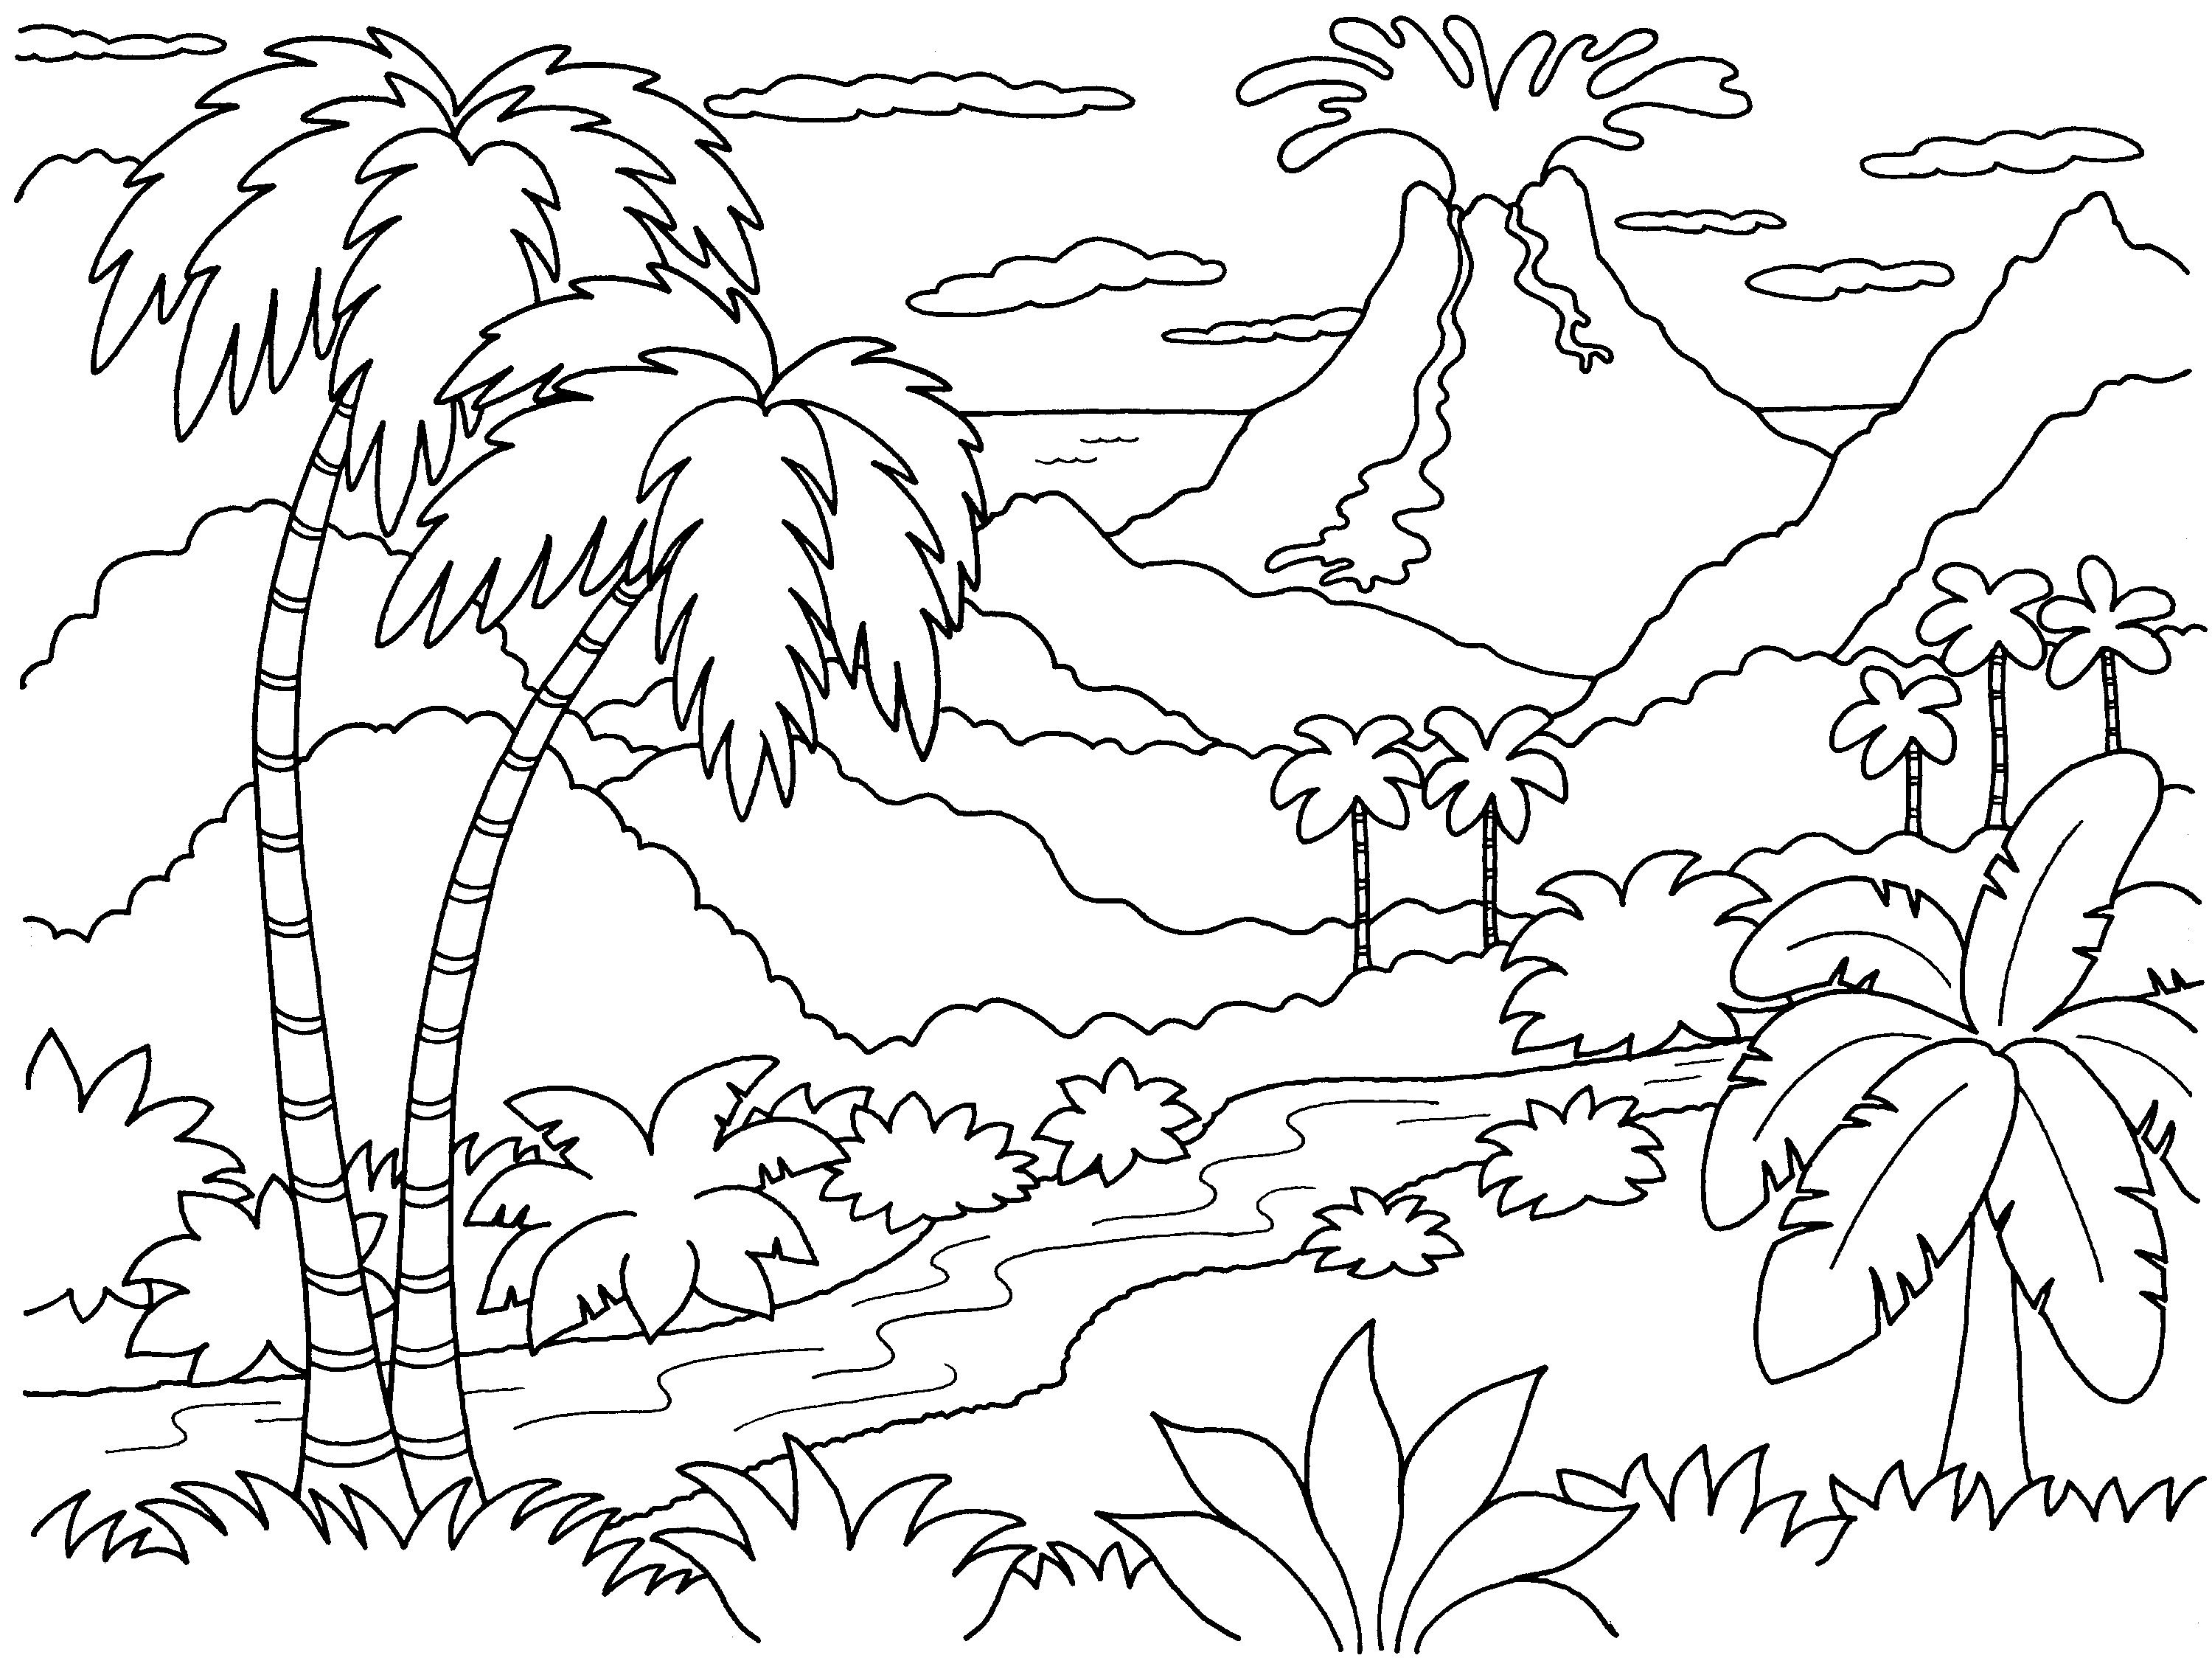 Drawing pages of nature - Nature Island Coloring Pages Print Coloring Pages Best Island